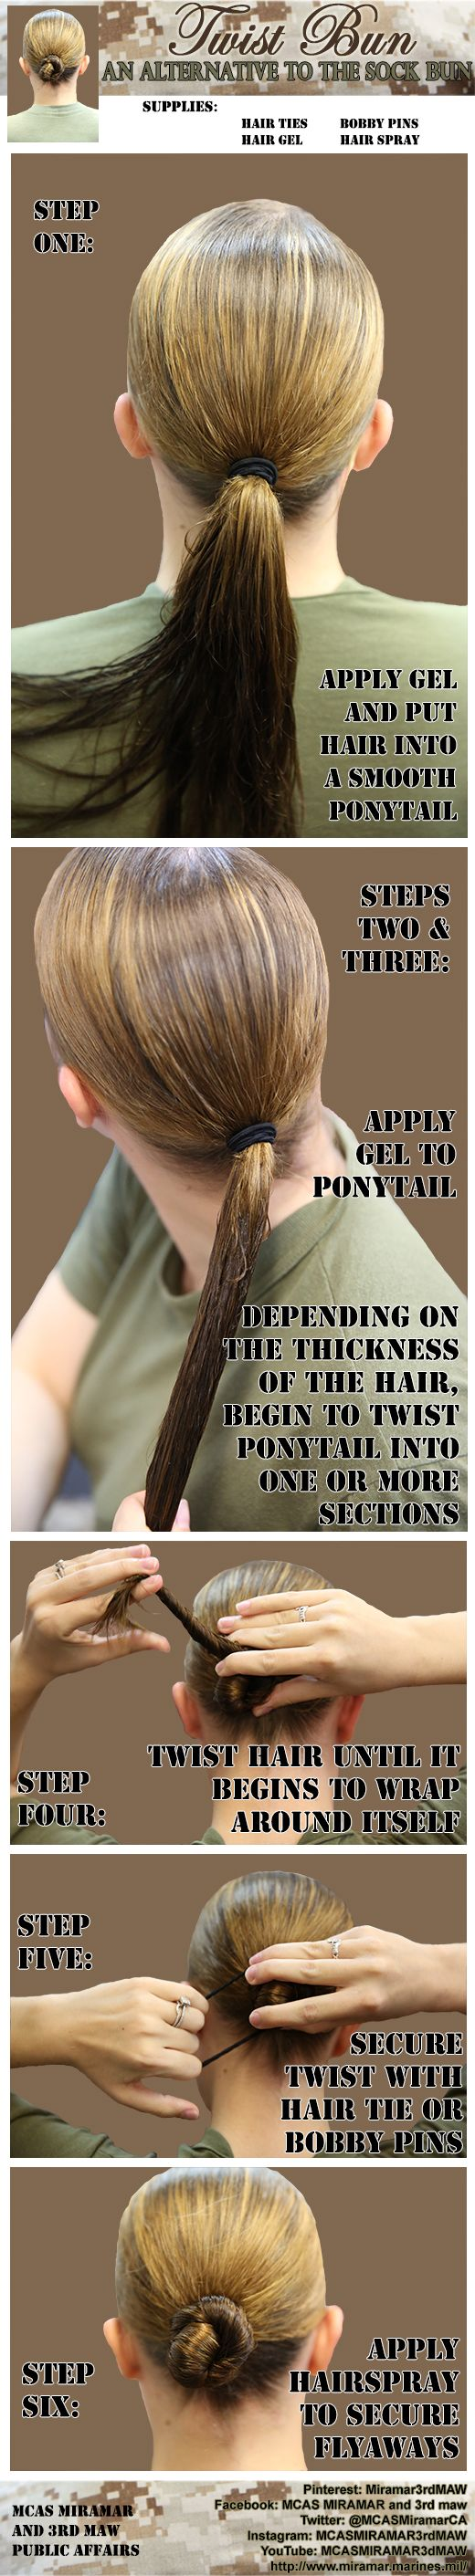 Not a fan of the sock bun? Try this alternative to the traditional military hairstyle. This works great on long or thin hair, but this style can be adapted to all hair types.  For more Marine Corps stories, photos and how-to guides, follow MCAS Miramar and 3rd Marine Aircraft Wing: http://www.pinterest.com/miramar3rdmaw/.